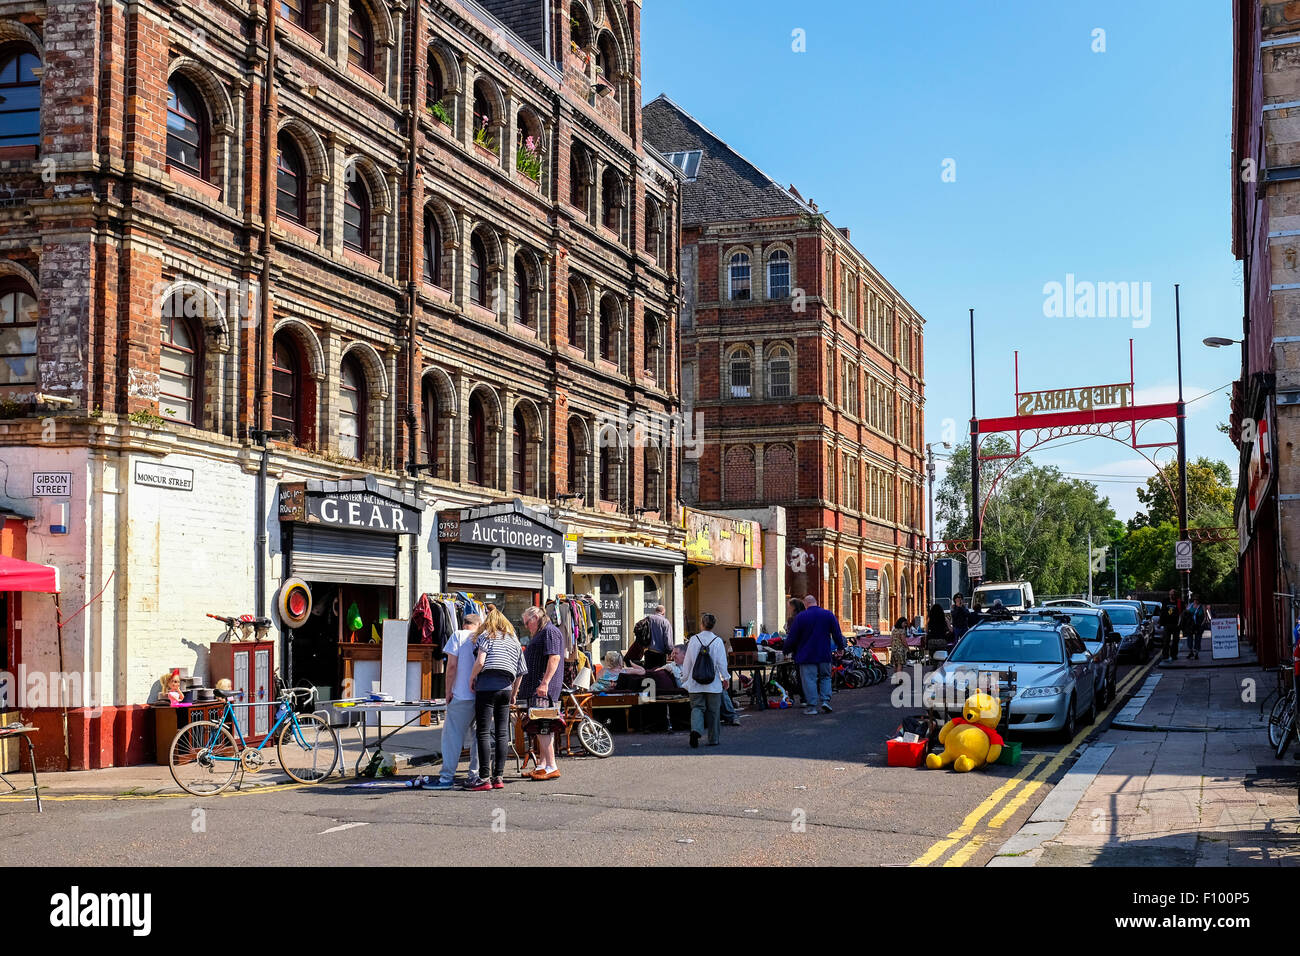 East entrance to the famous street market called The Barras, Glasgow, Scotland, UK - Stock Image